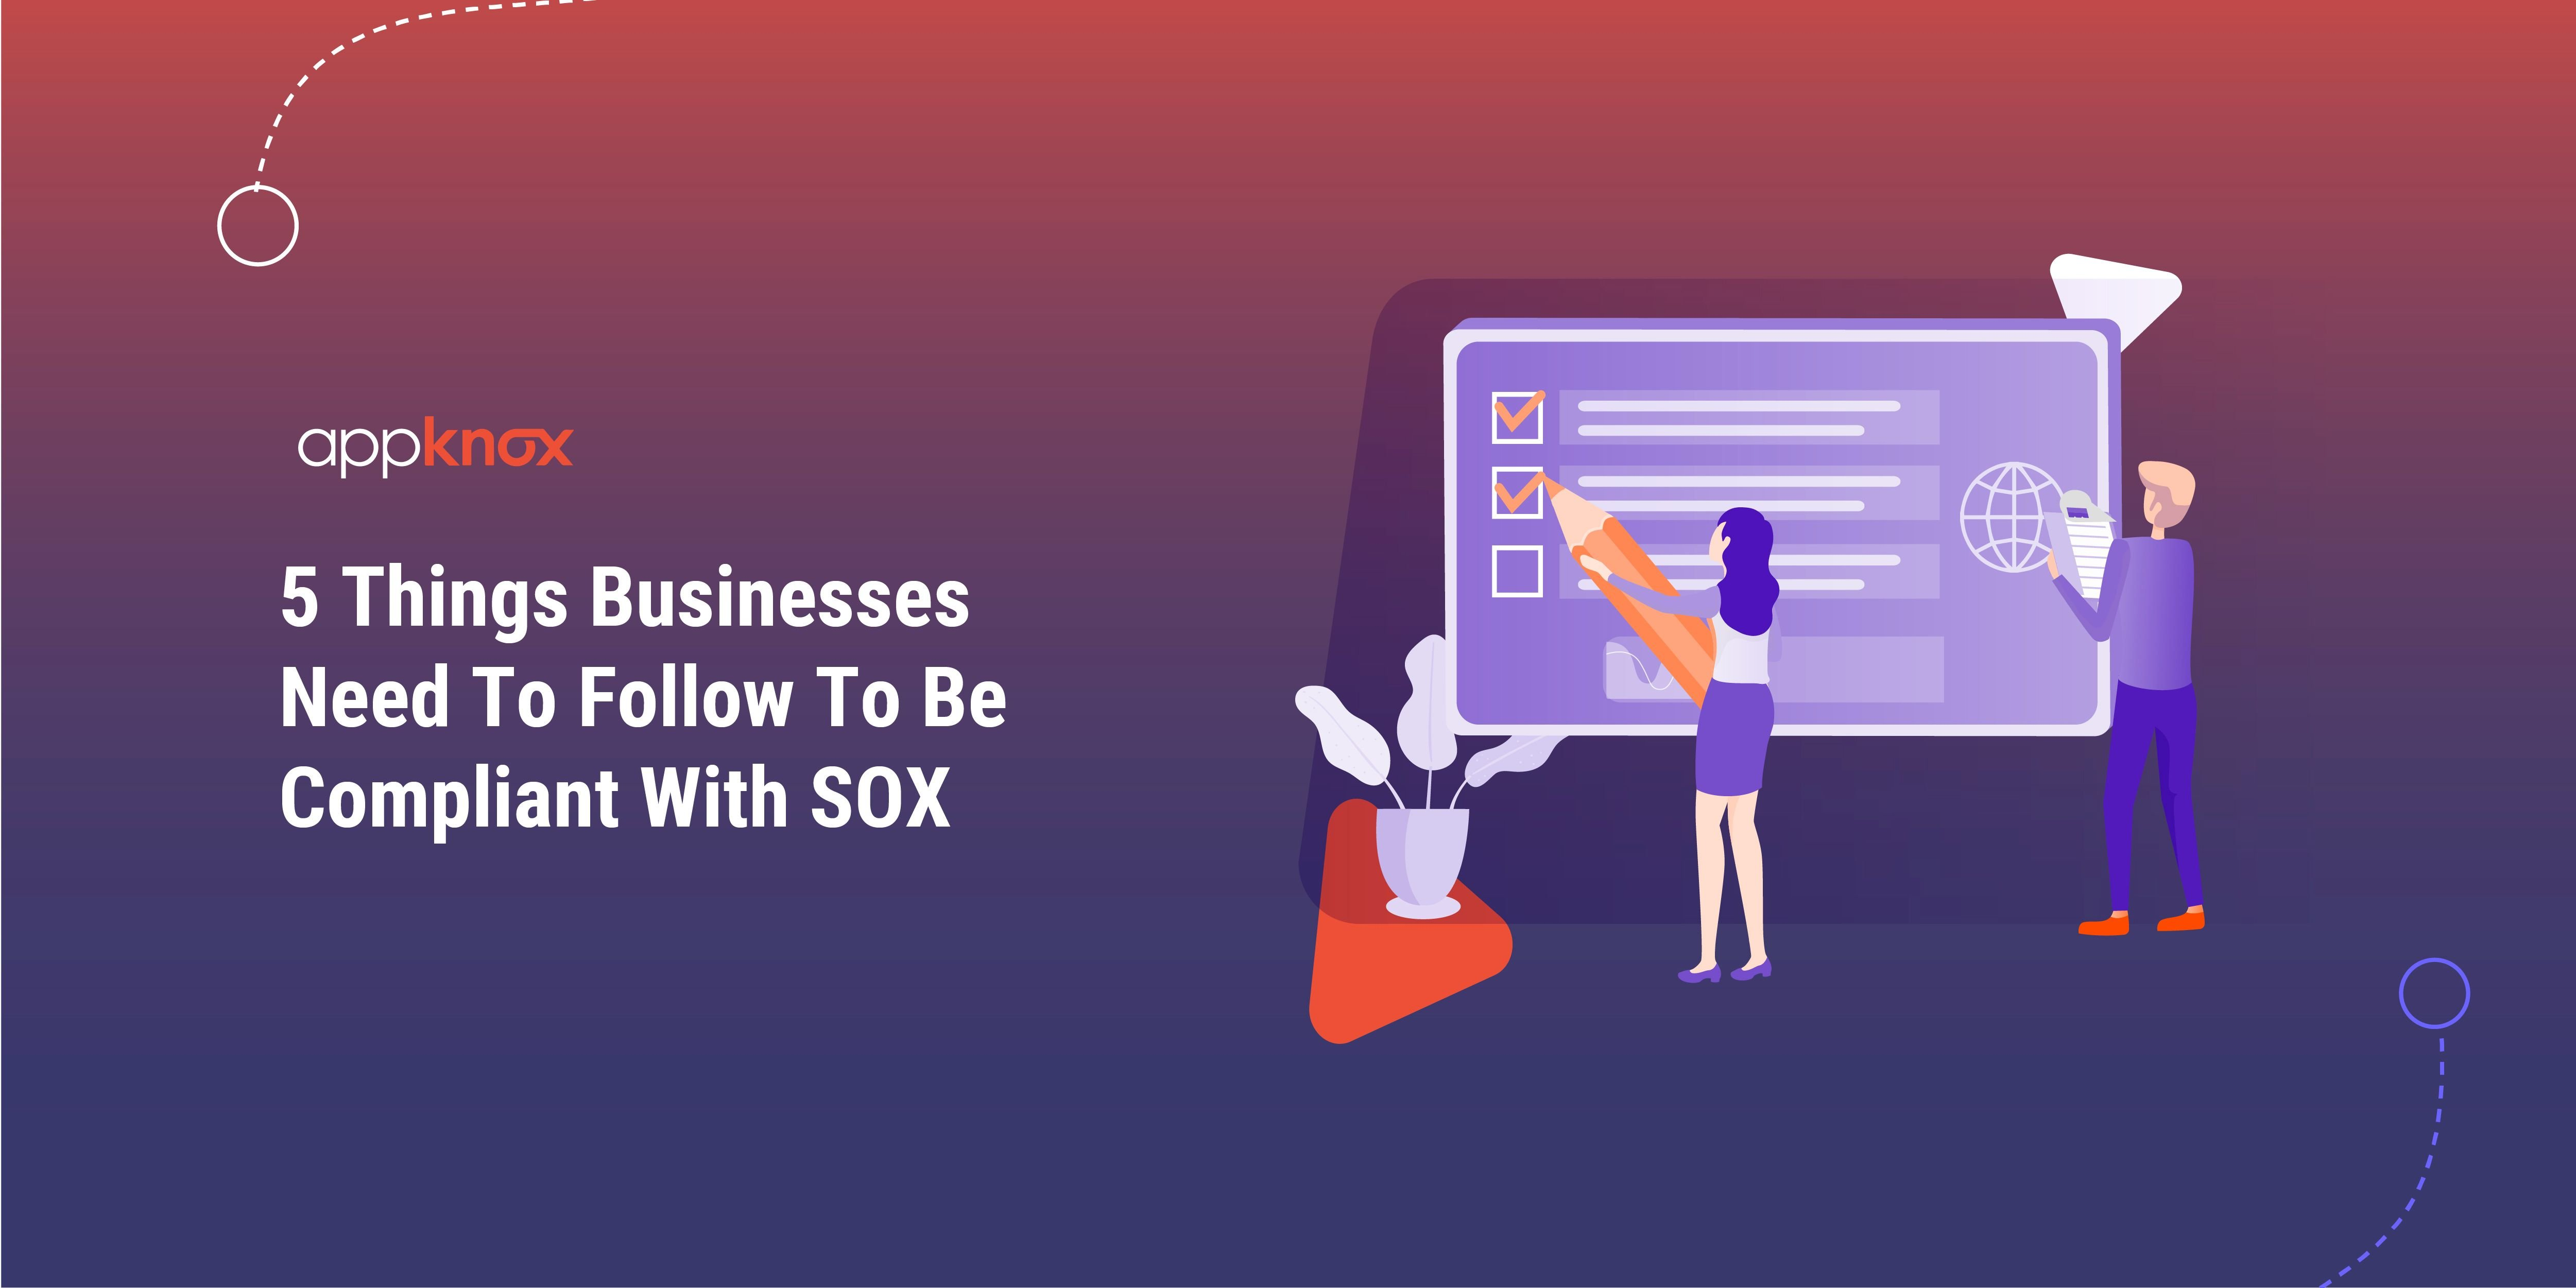 5 Things Businesses Need To Follow To Be Compliant With SOX